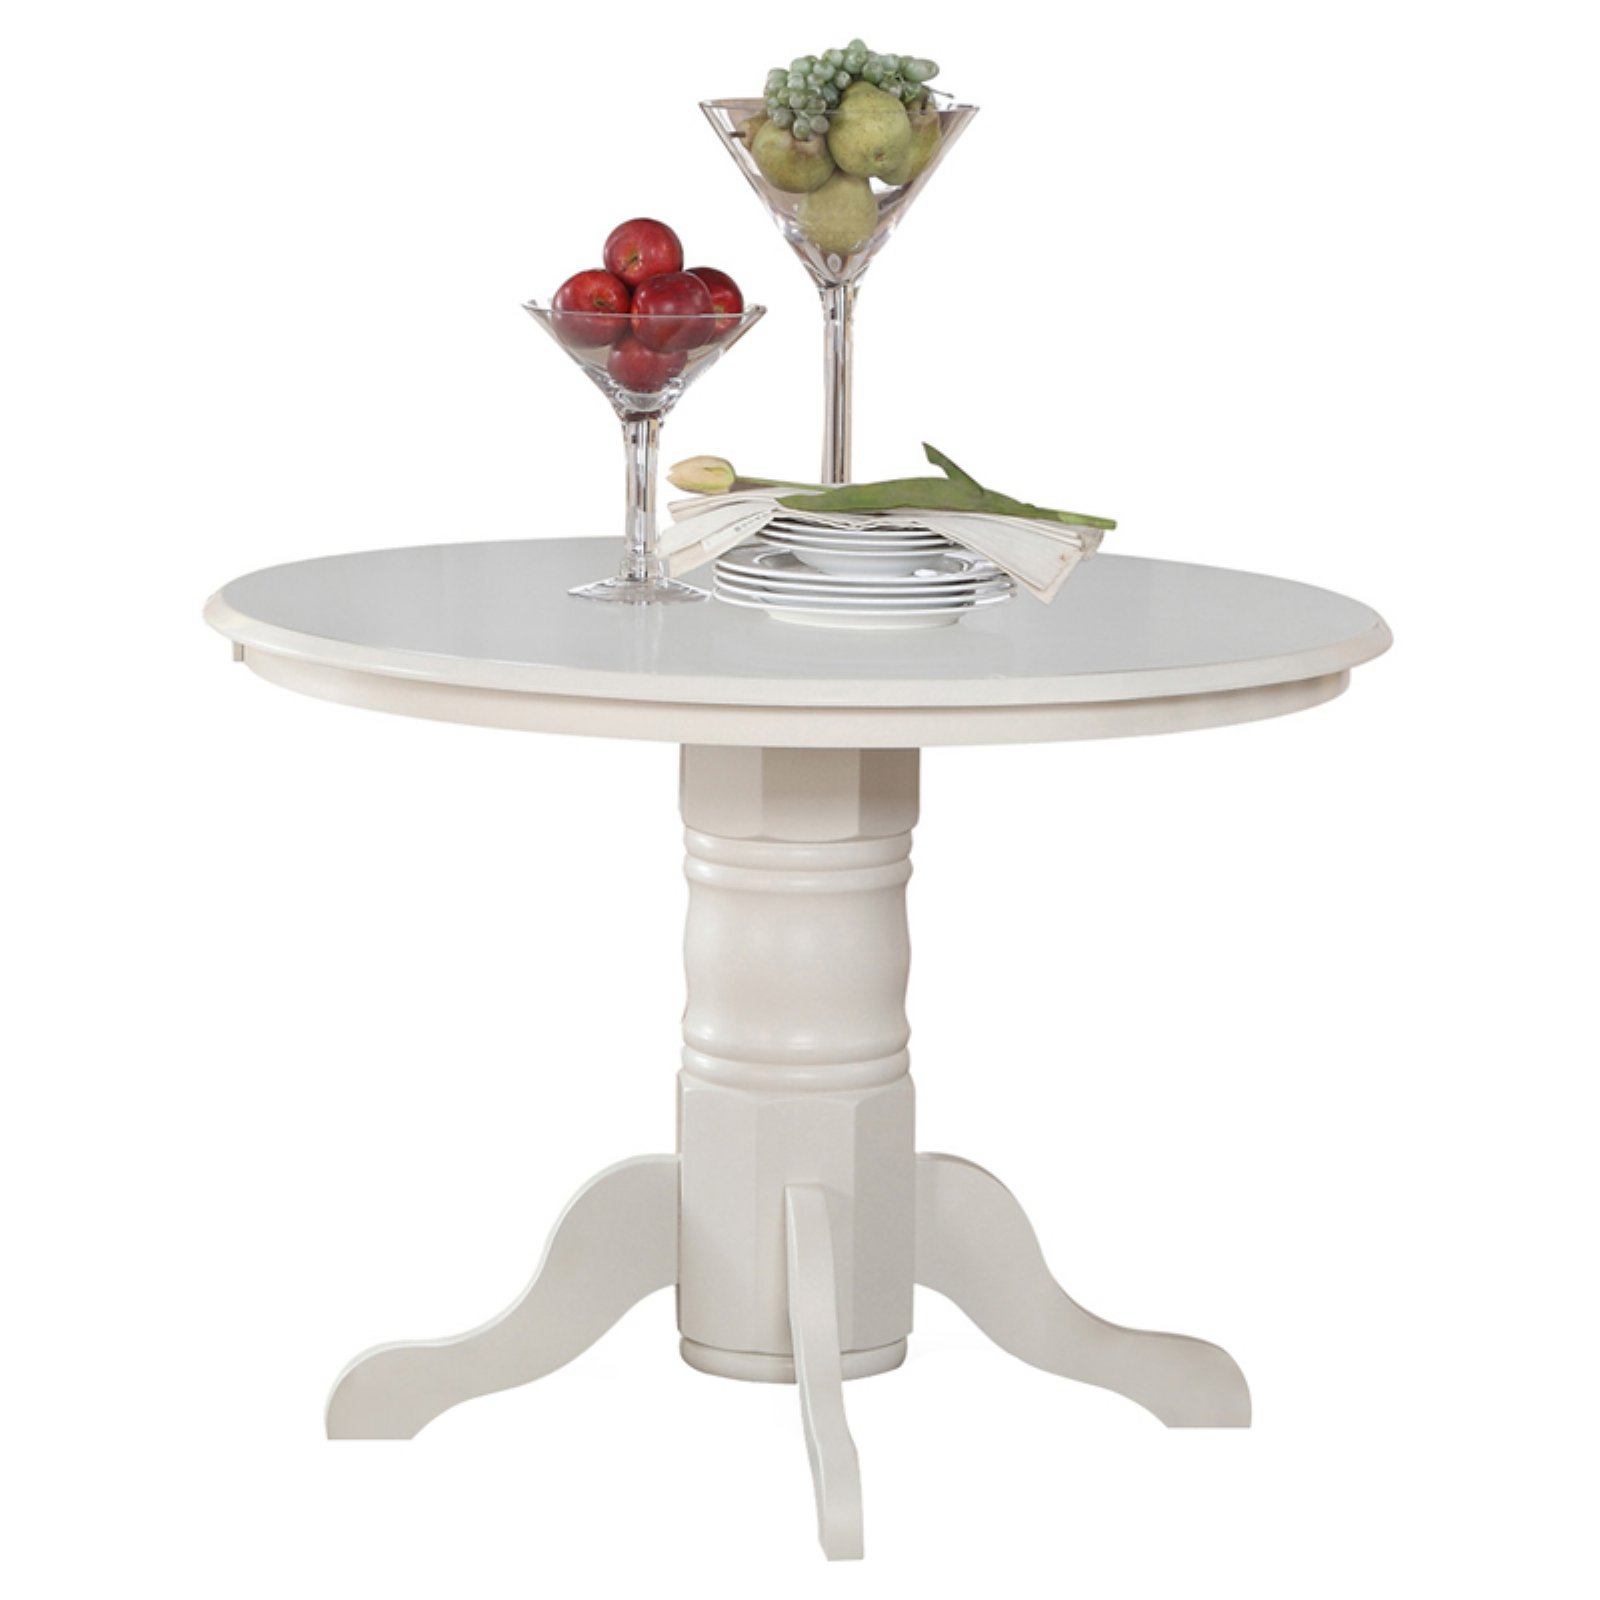 Click here to buy East West Furniture Shelton 42 Inch Round Pedestal Dining Table by East West Furniture.